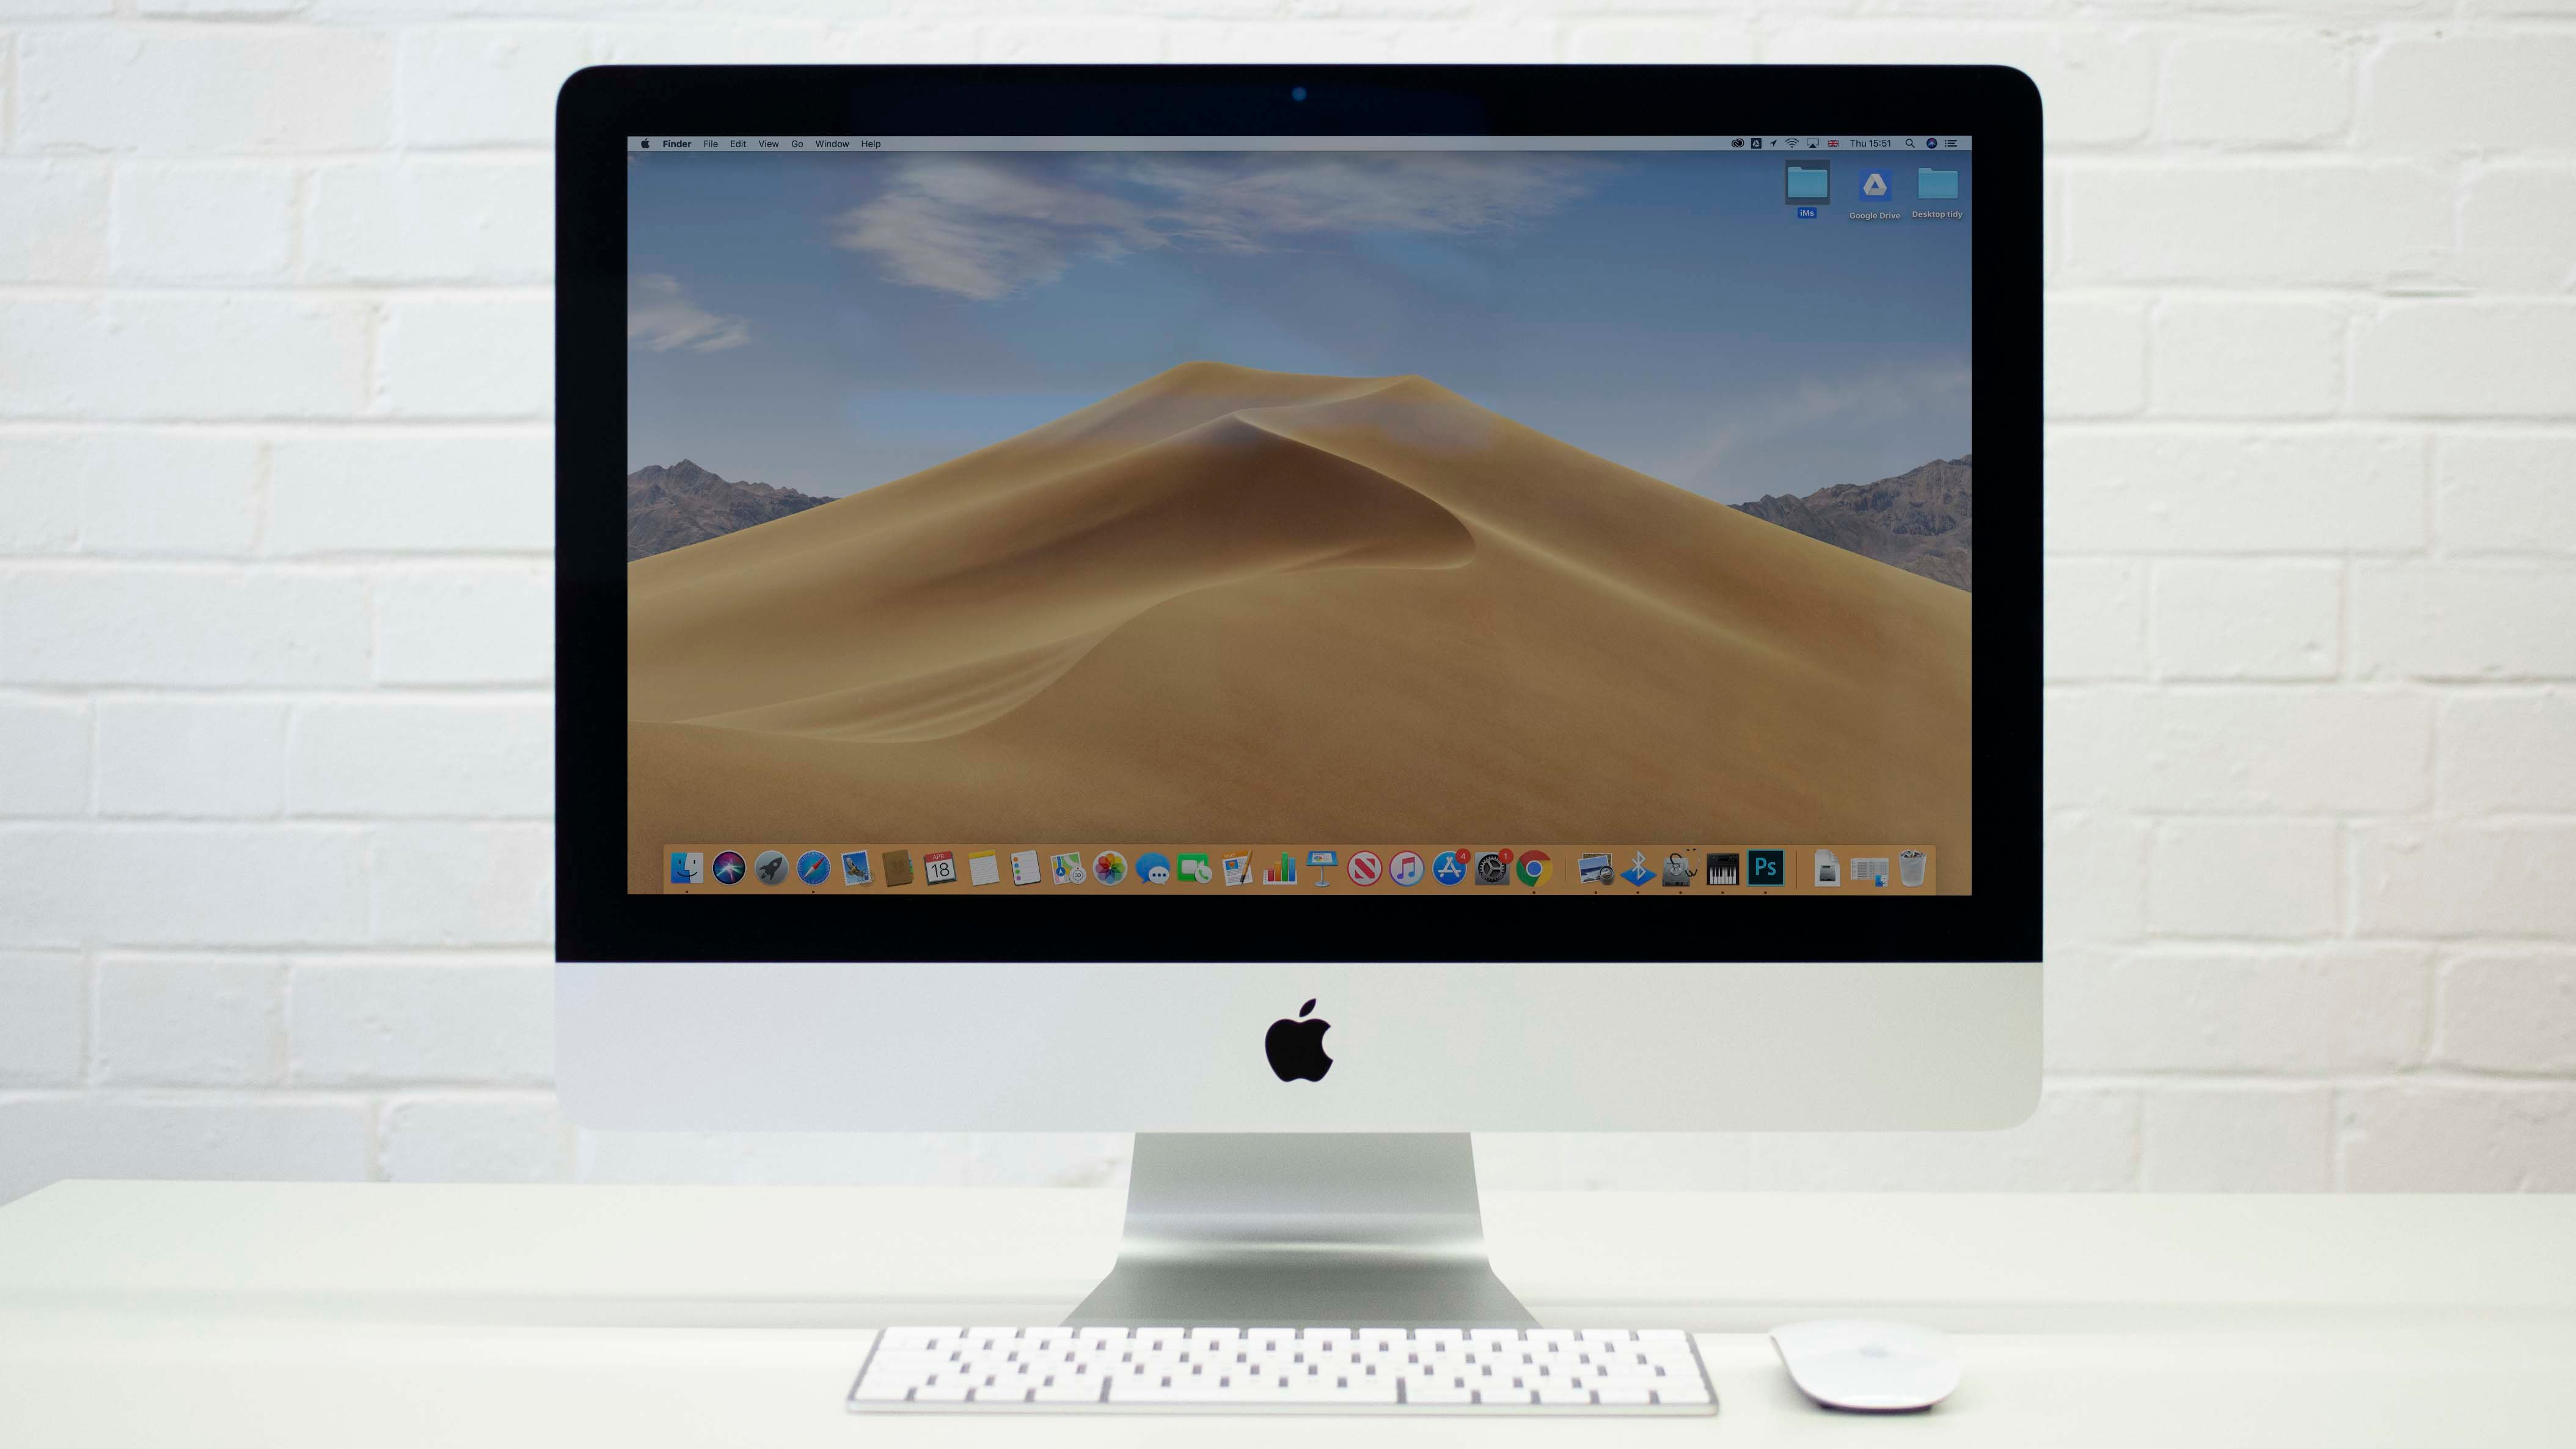 Apple 21.5-inch iMac (2019) review: Slick, elegant and powerful but showing its age